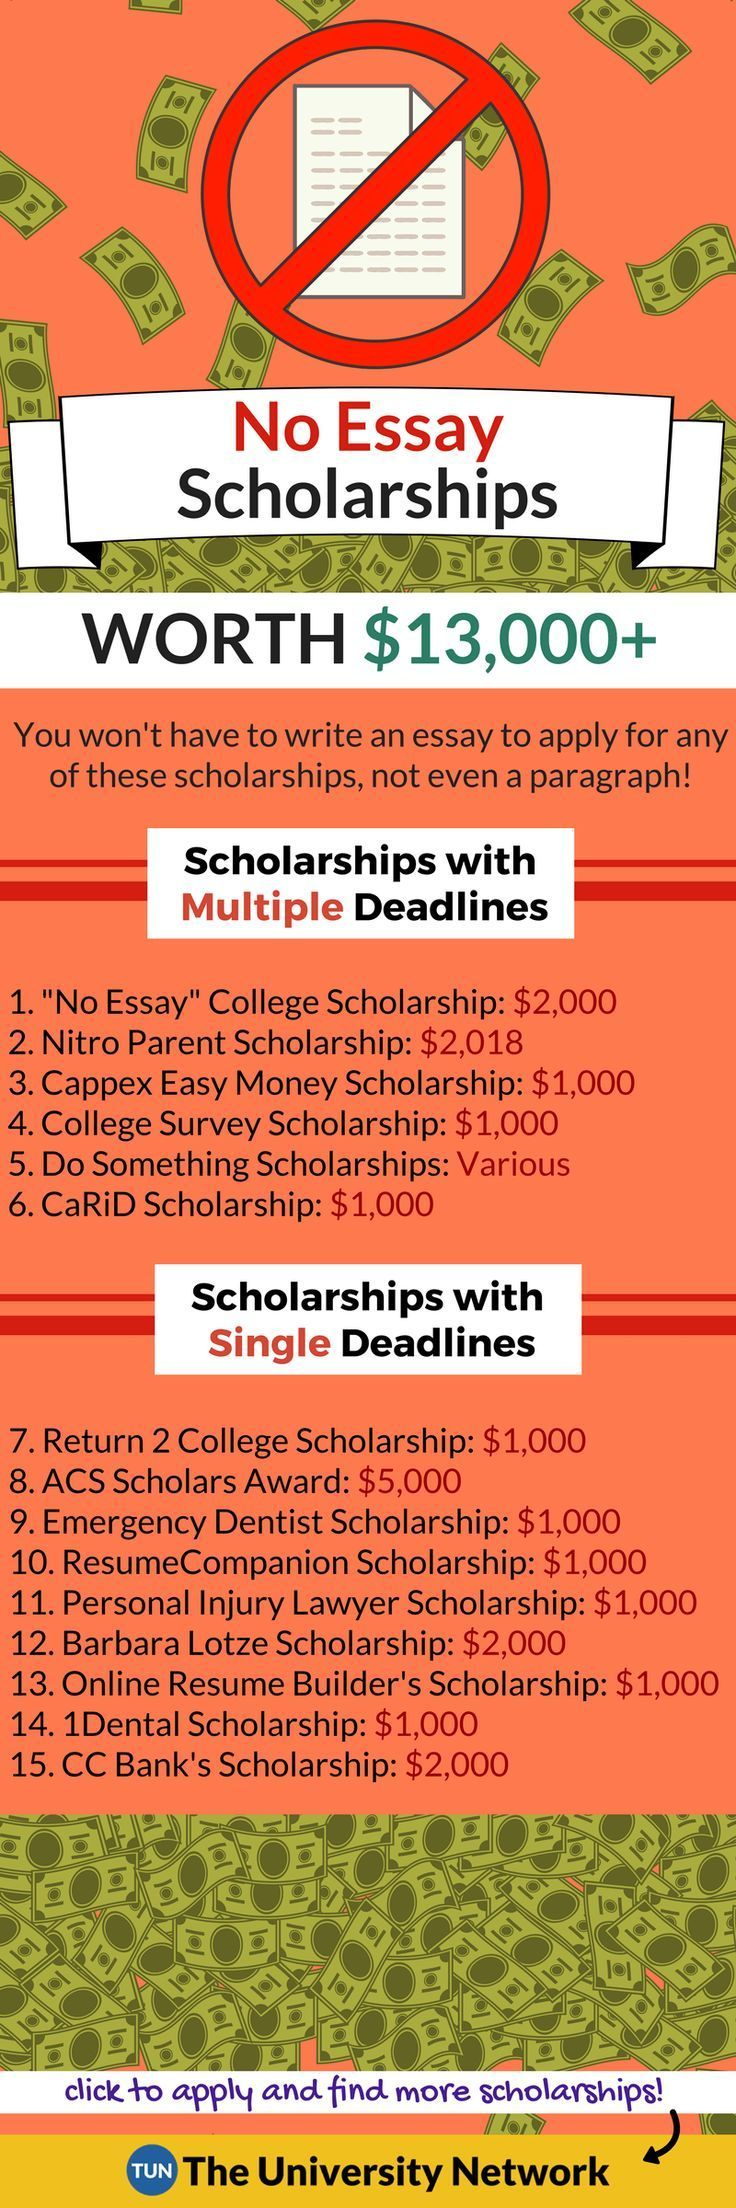 No Essay Scholarships Worth   Parenting  Pinterest  You Won T Have To Write An Essay To Apply For Any Of These Scholarships  Not Even A Paragraph Onlineschool